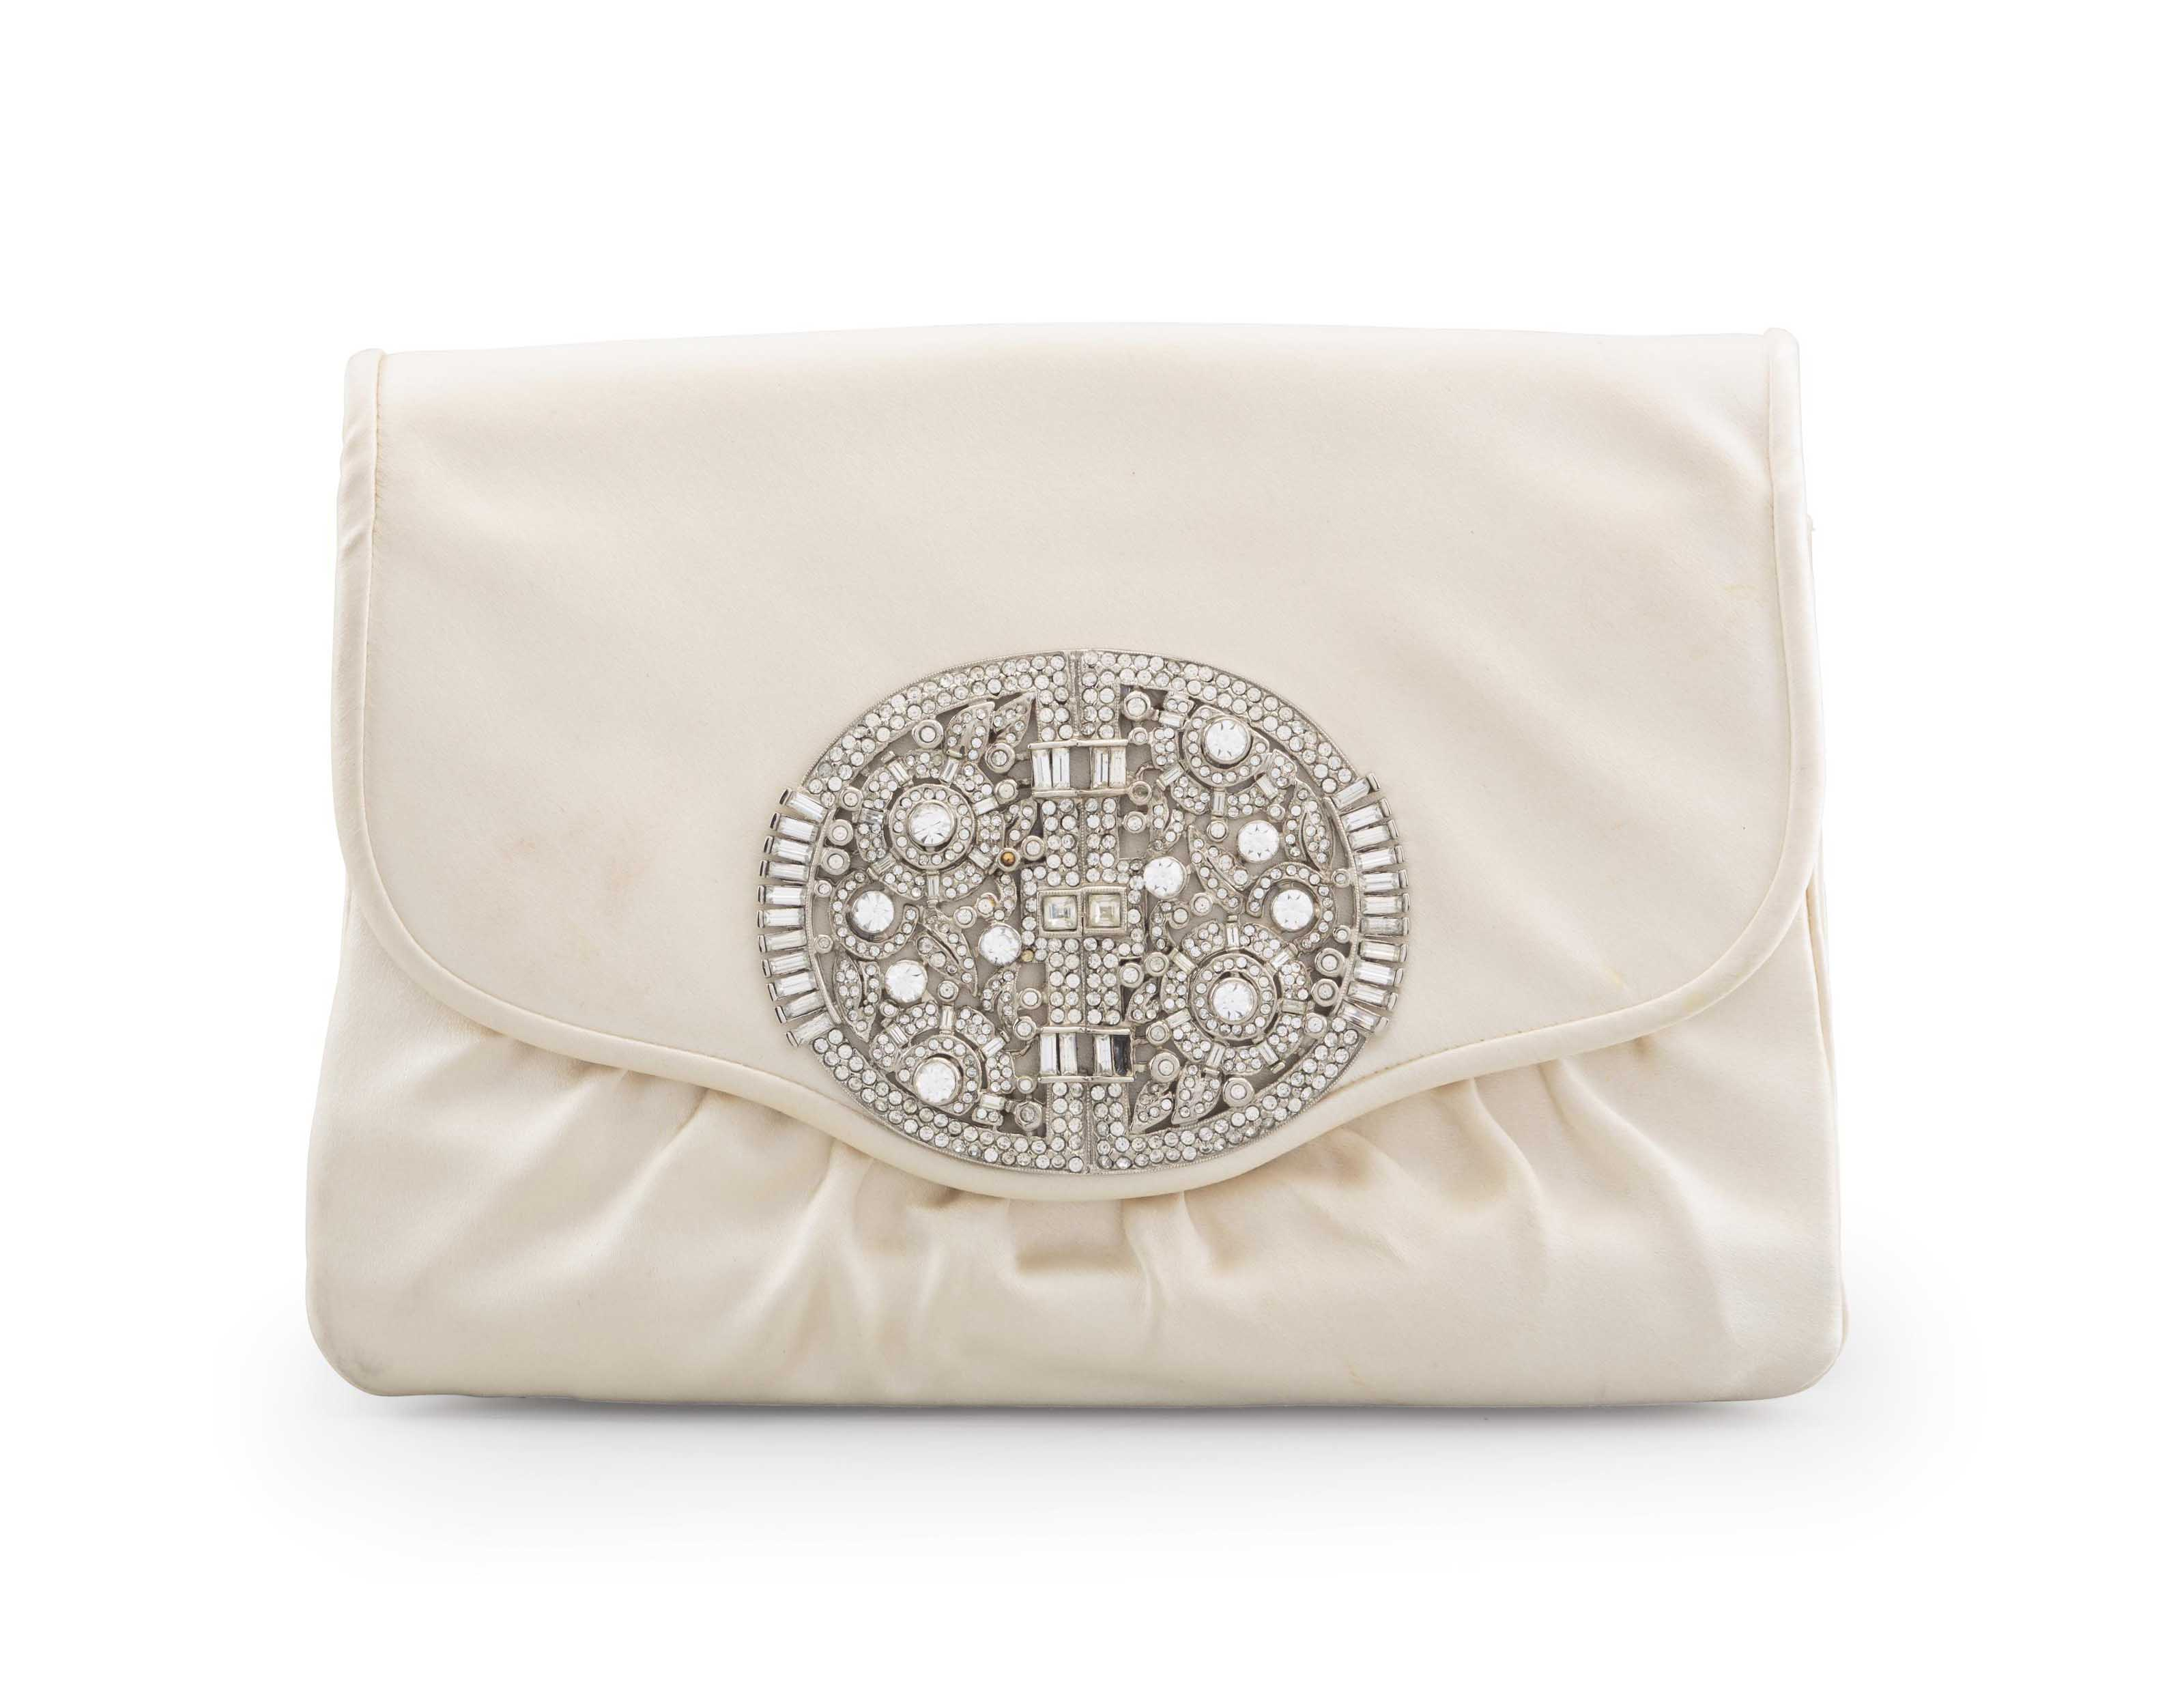 A CREAM SATIN ENVELOPE CLUTCH BAG WITH CRYSTAL ART-DECO ORNAMENT